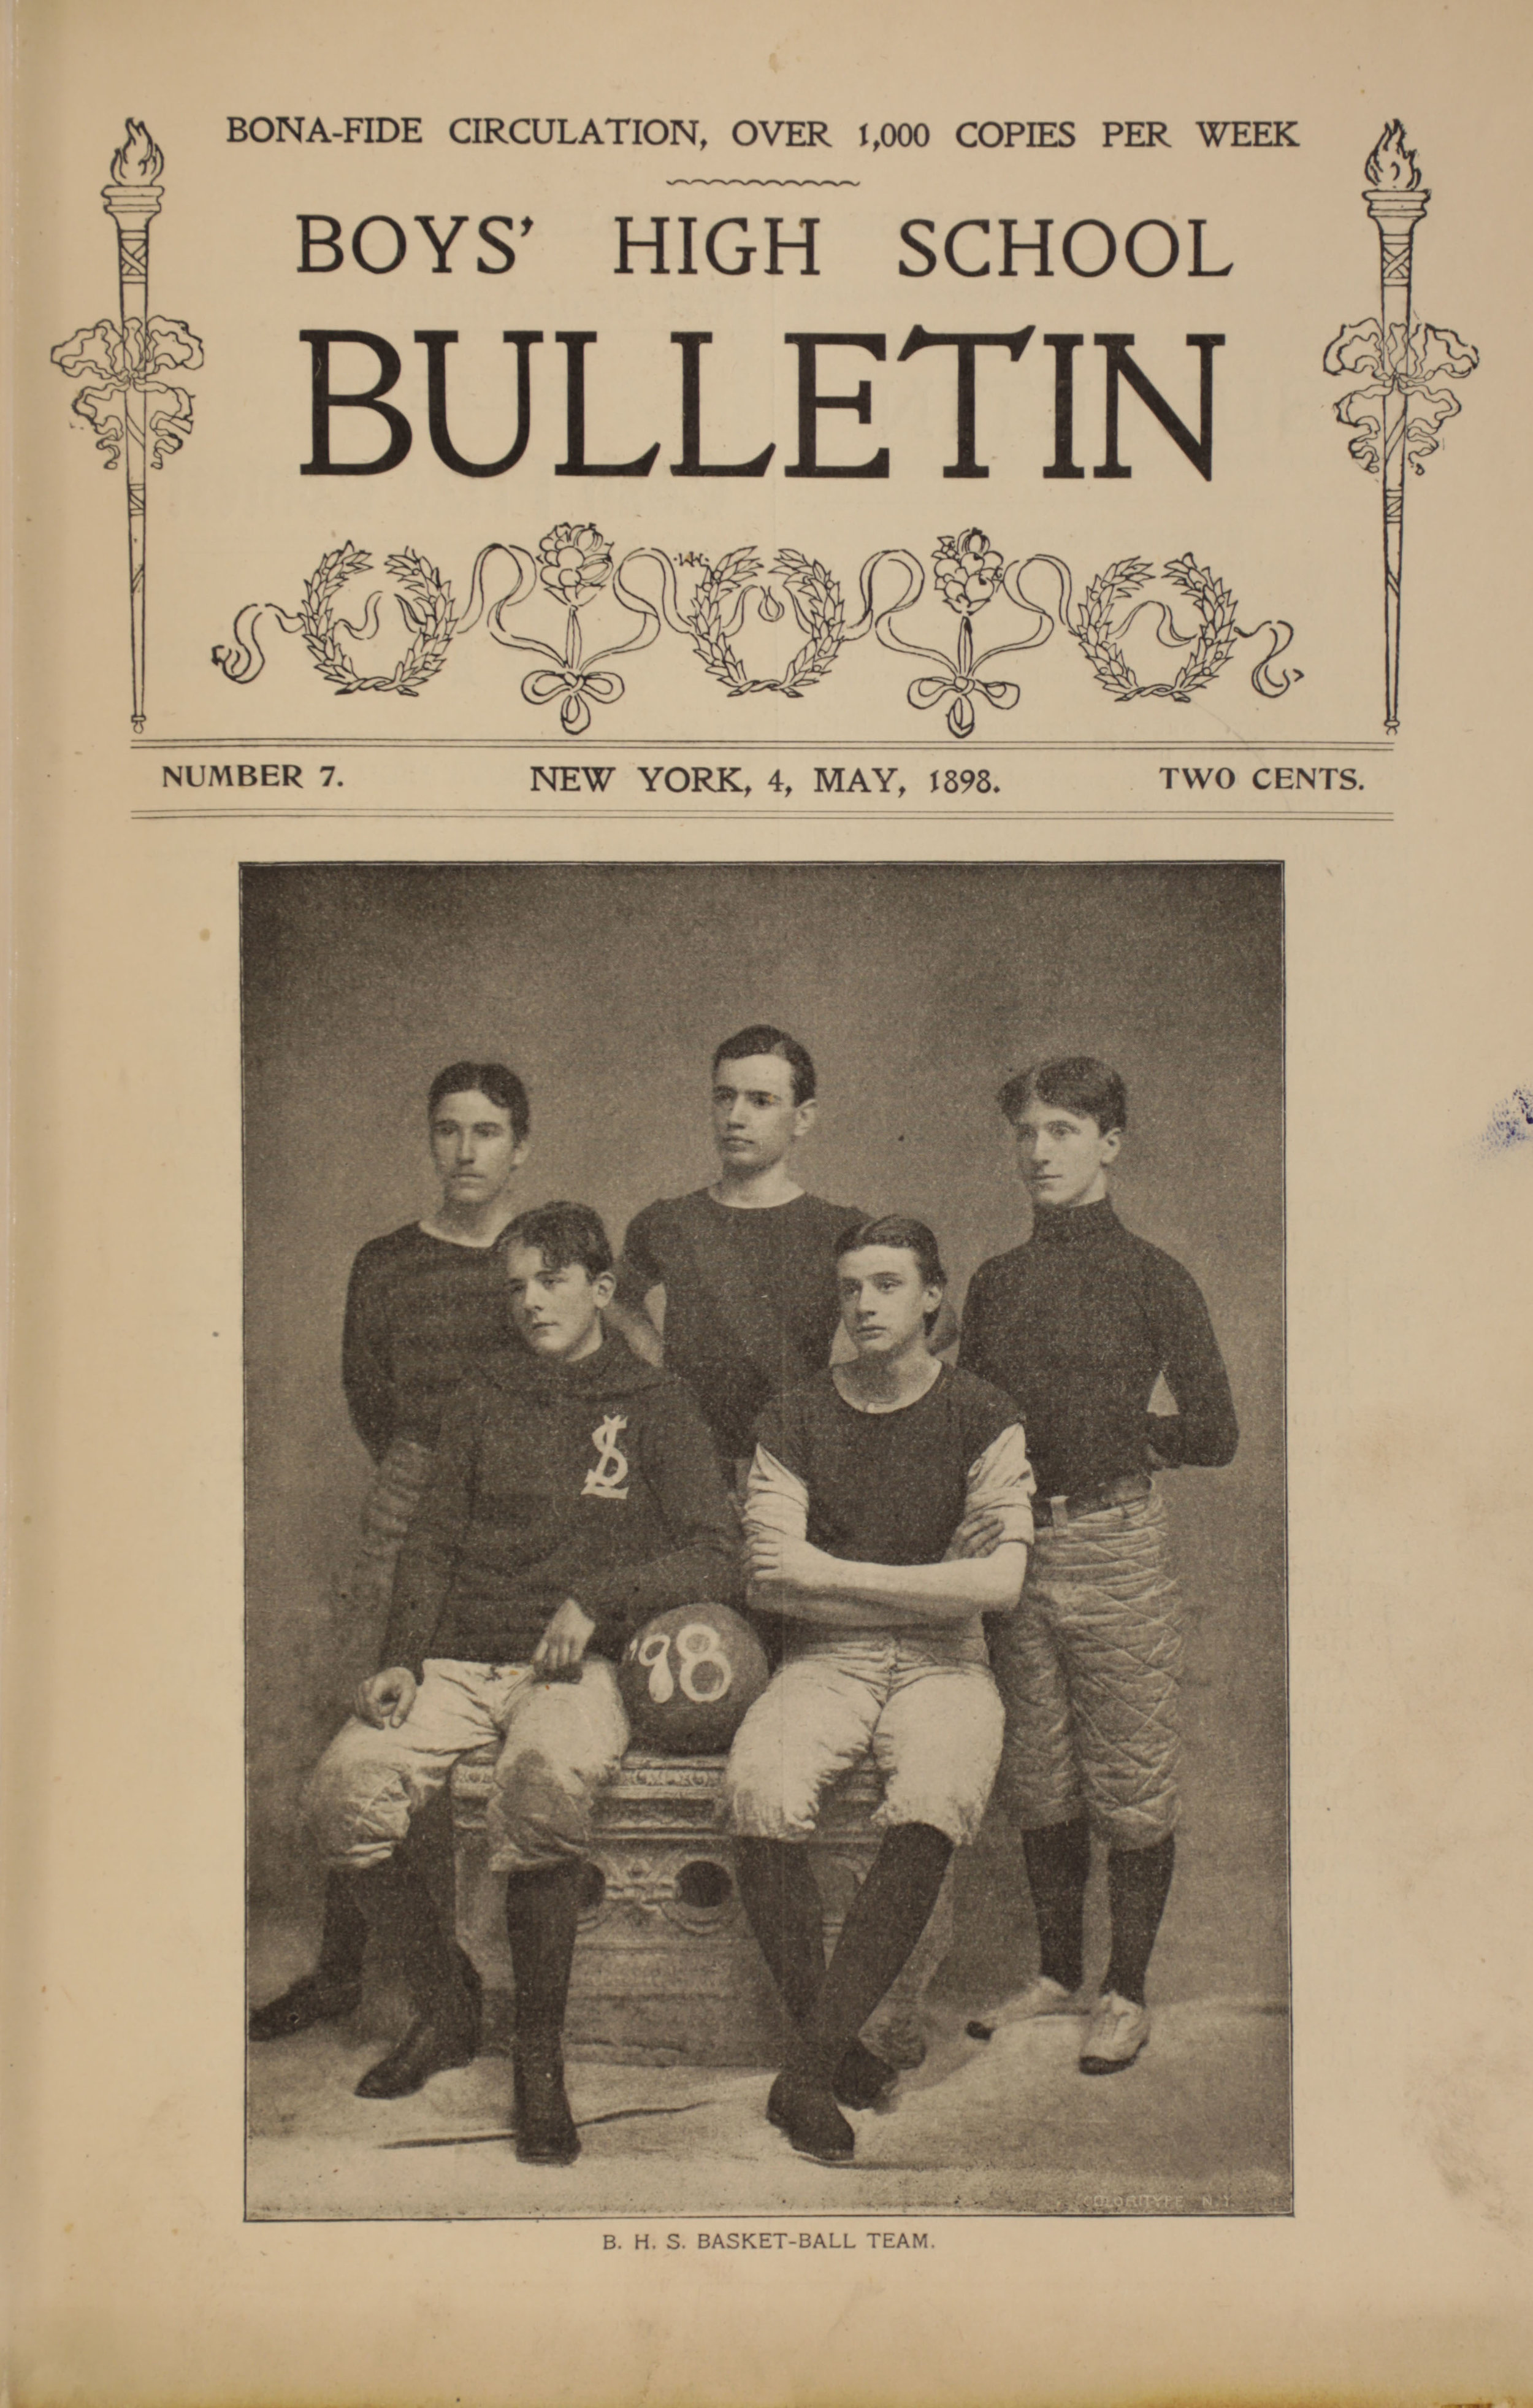 Boys' High School Bulletin , #7, May 4, 1898. Board of Education Collection, NYC Municipal Archives.